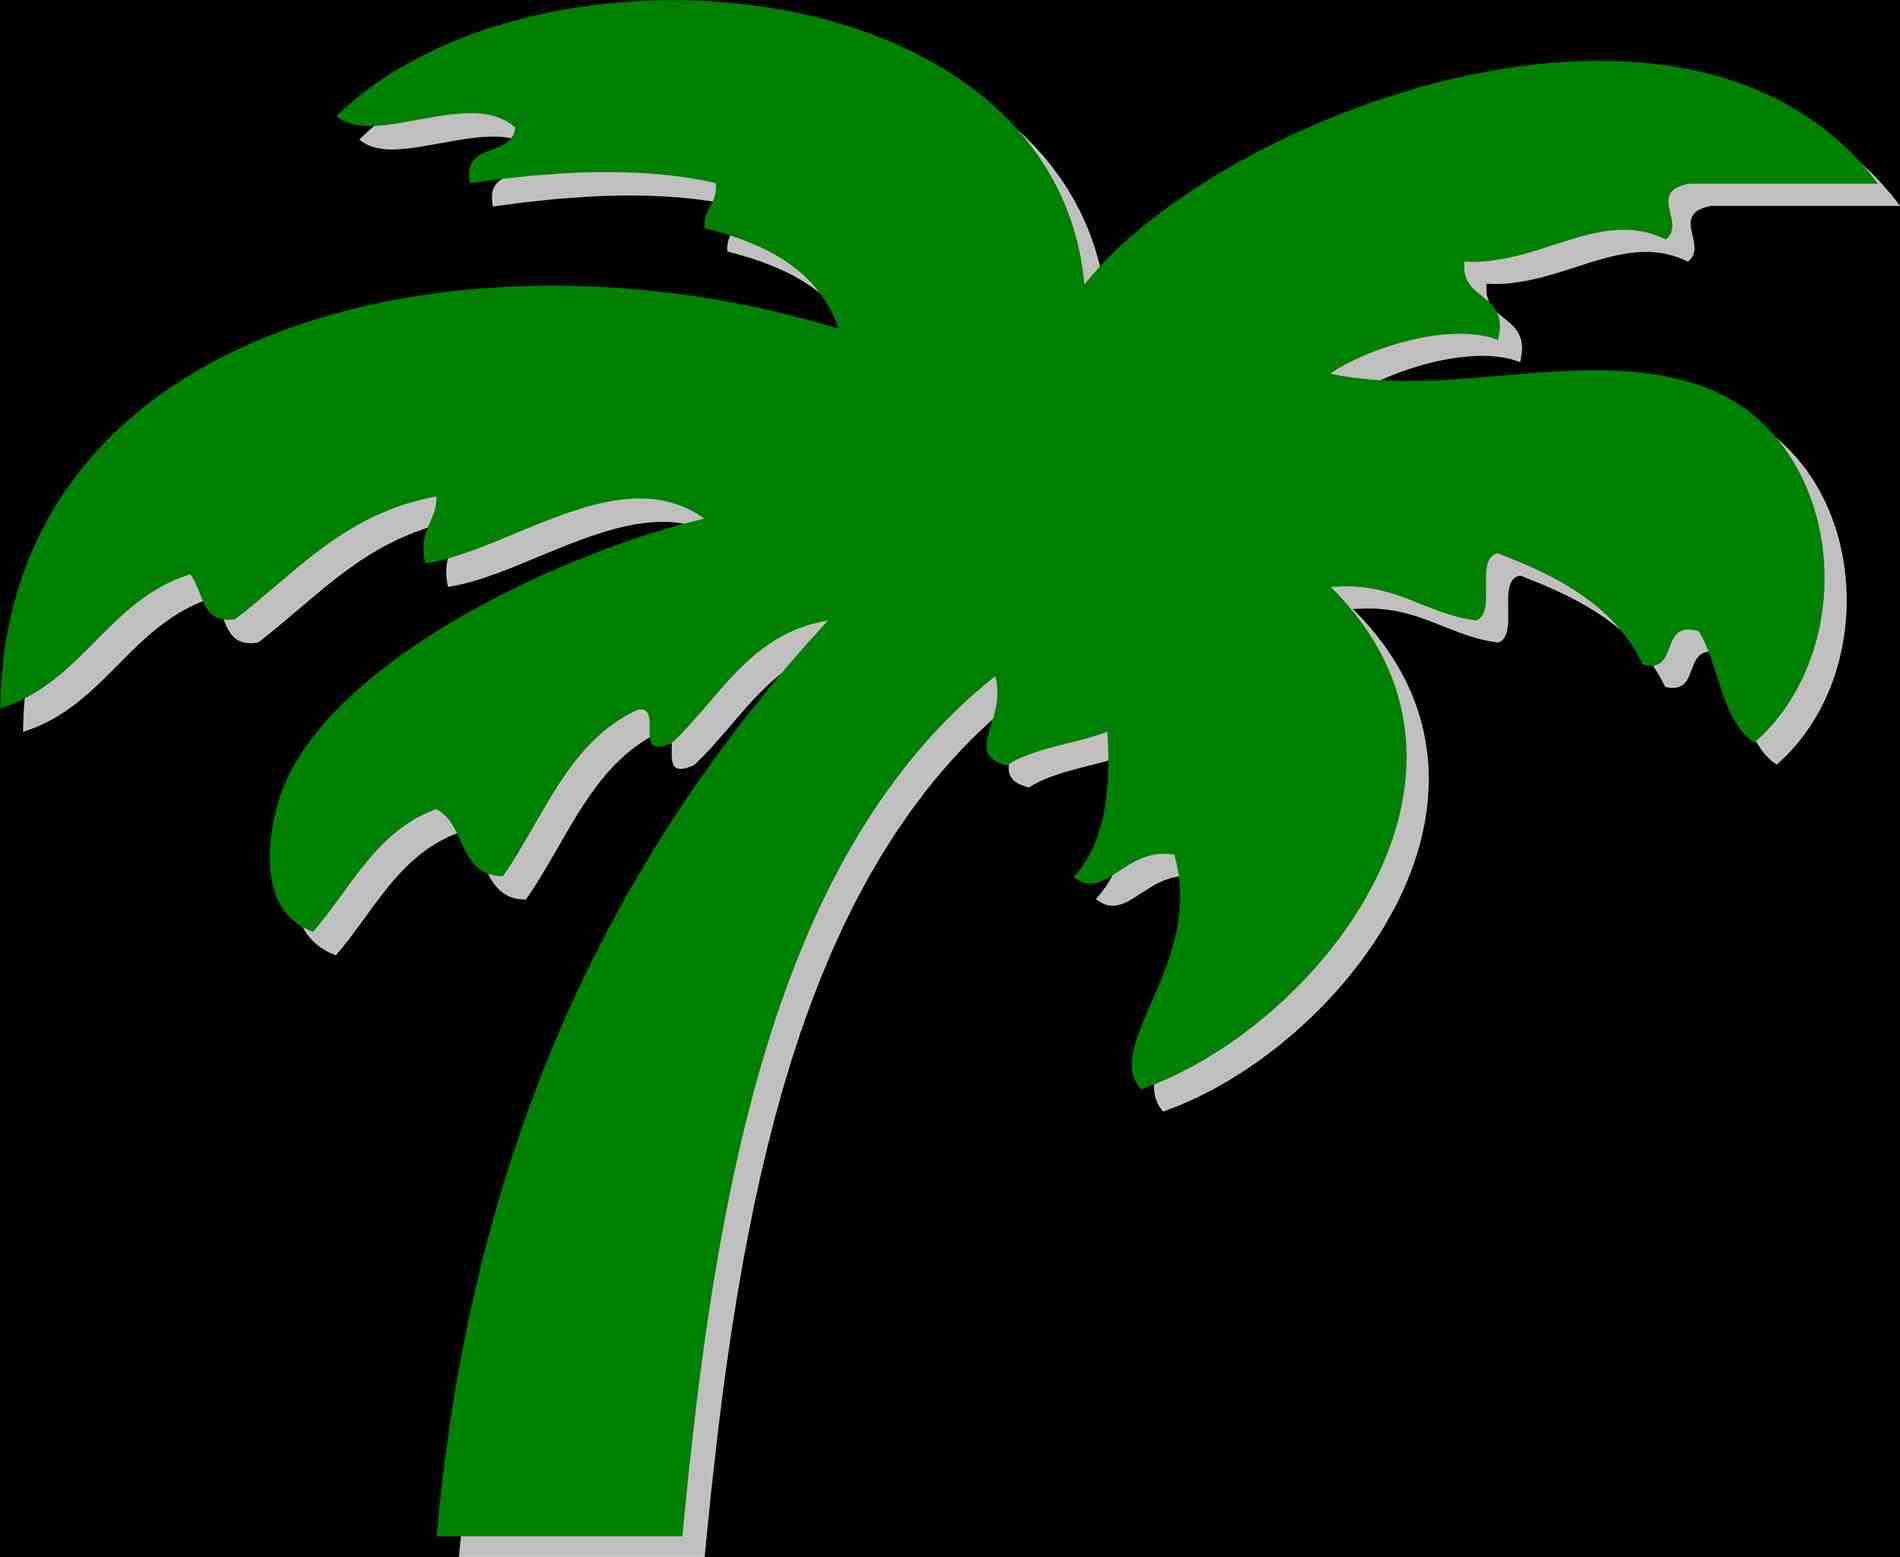 1900x1557 Palm Tree Christmas Lights Clipart Cheminee.website